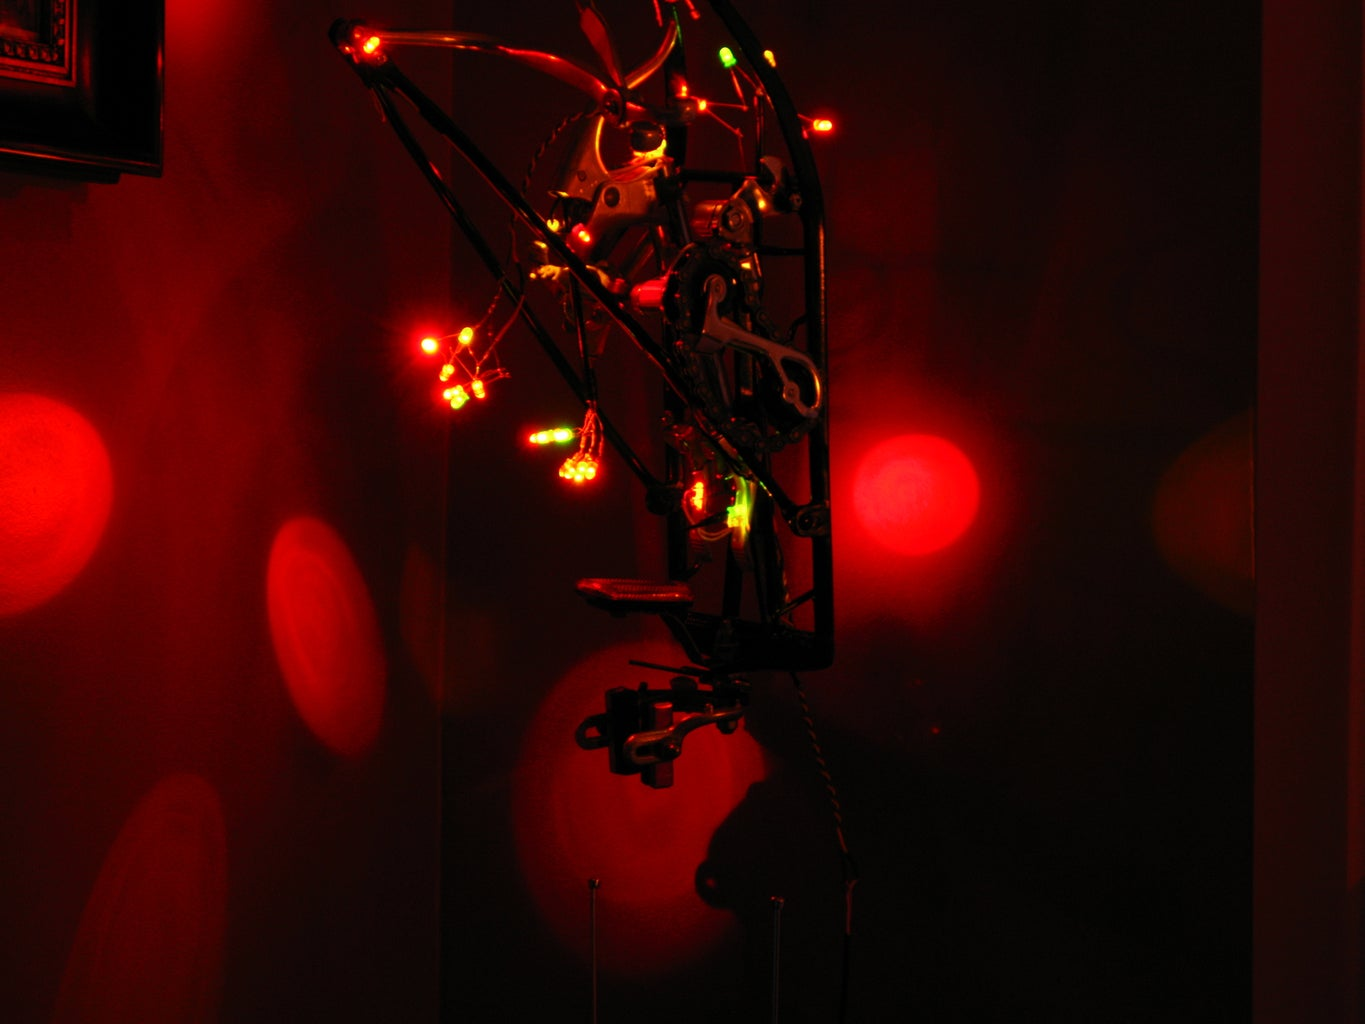 LED Bicycle Lamp Sculpture